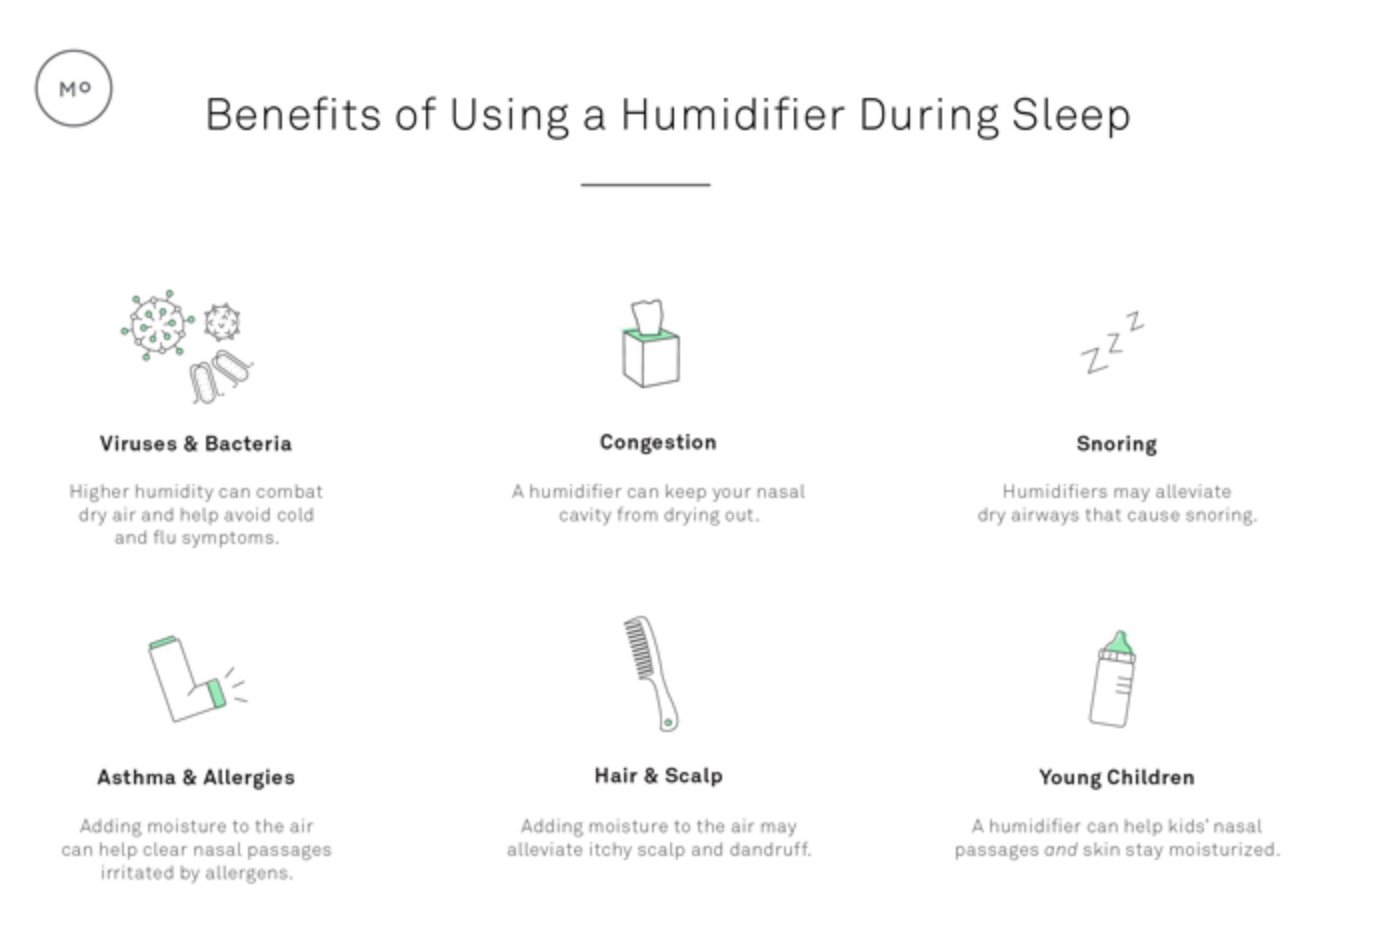 benefits of humidifier - Face Yoga